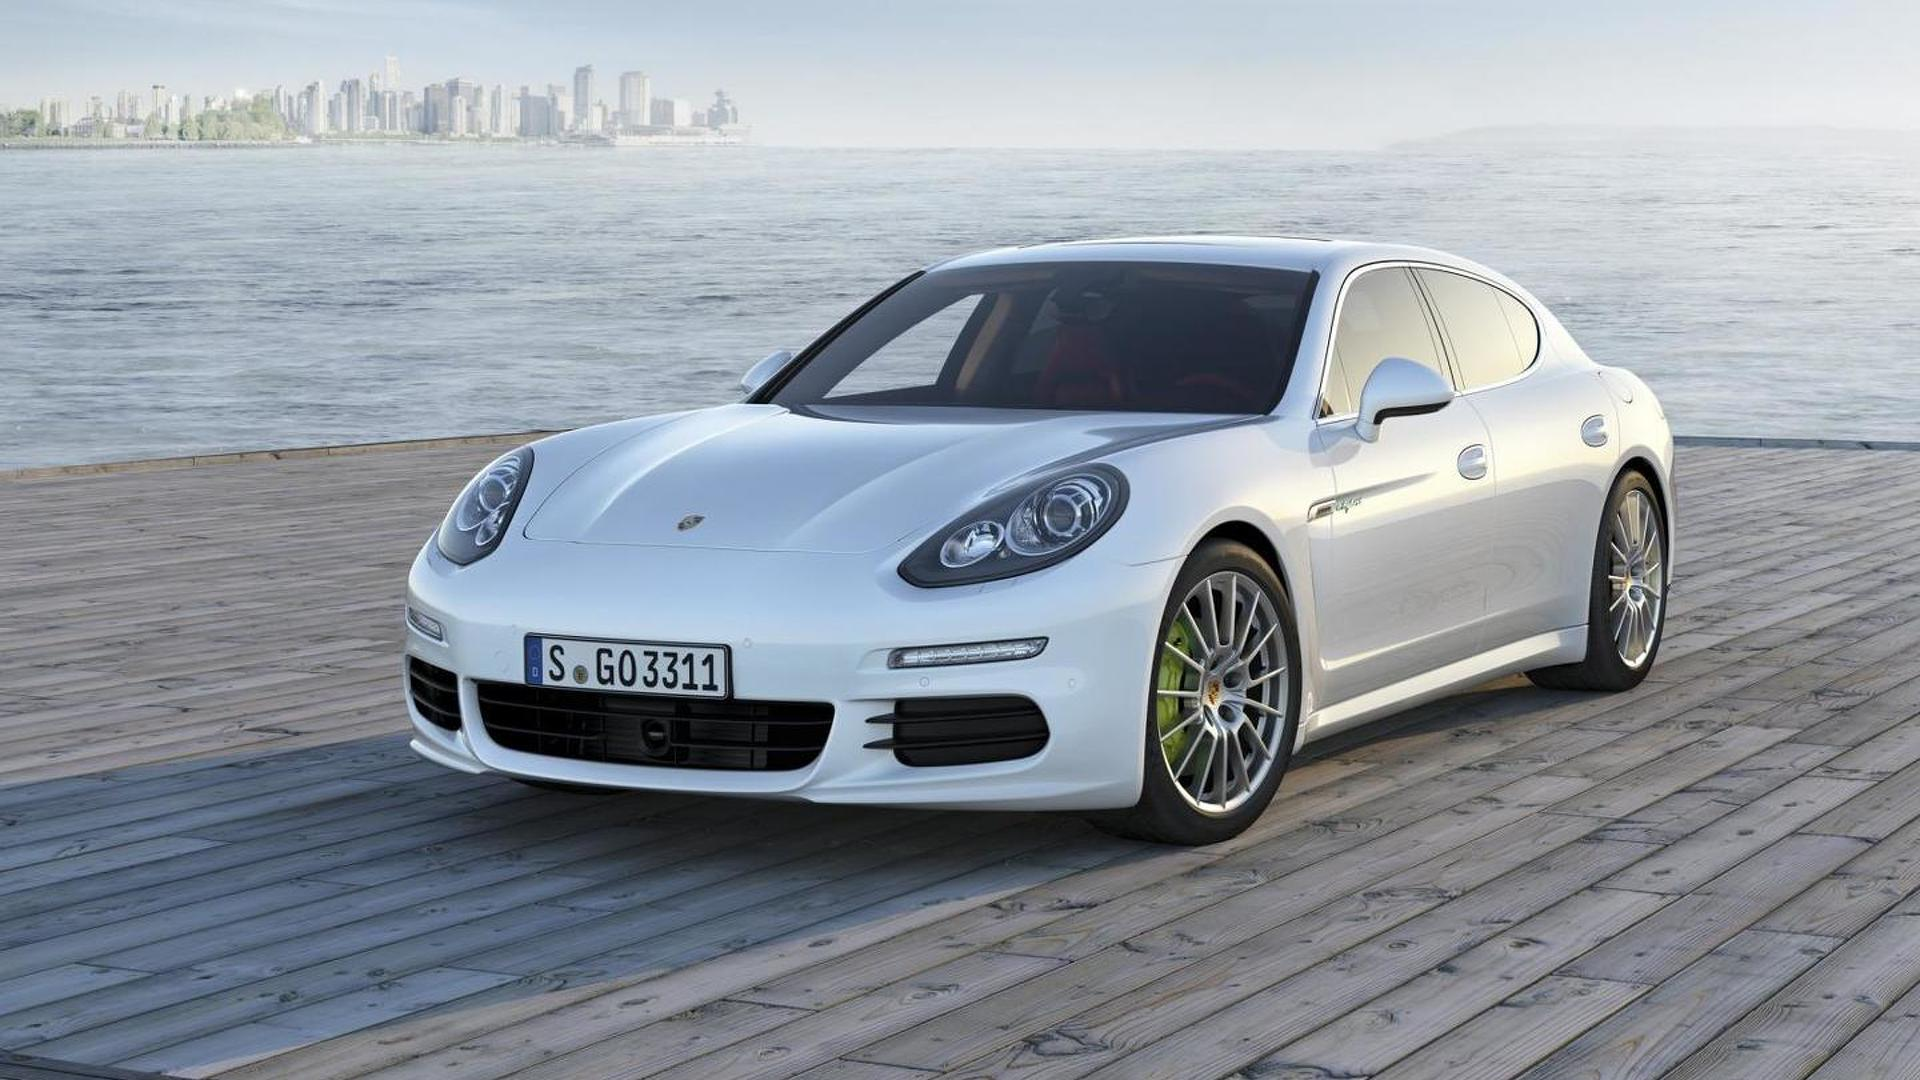 All Porsches will receive hybrid variant